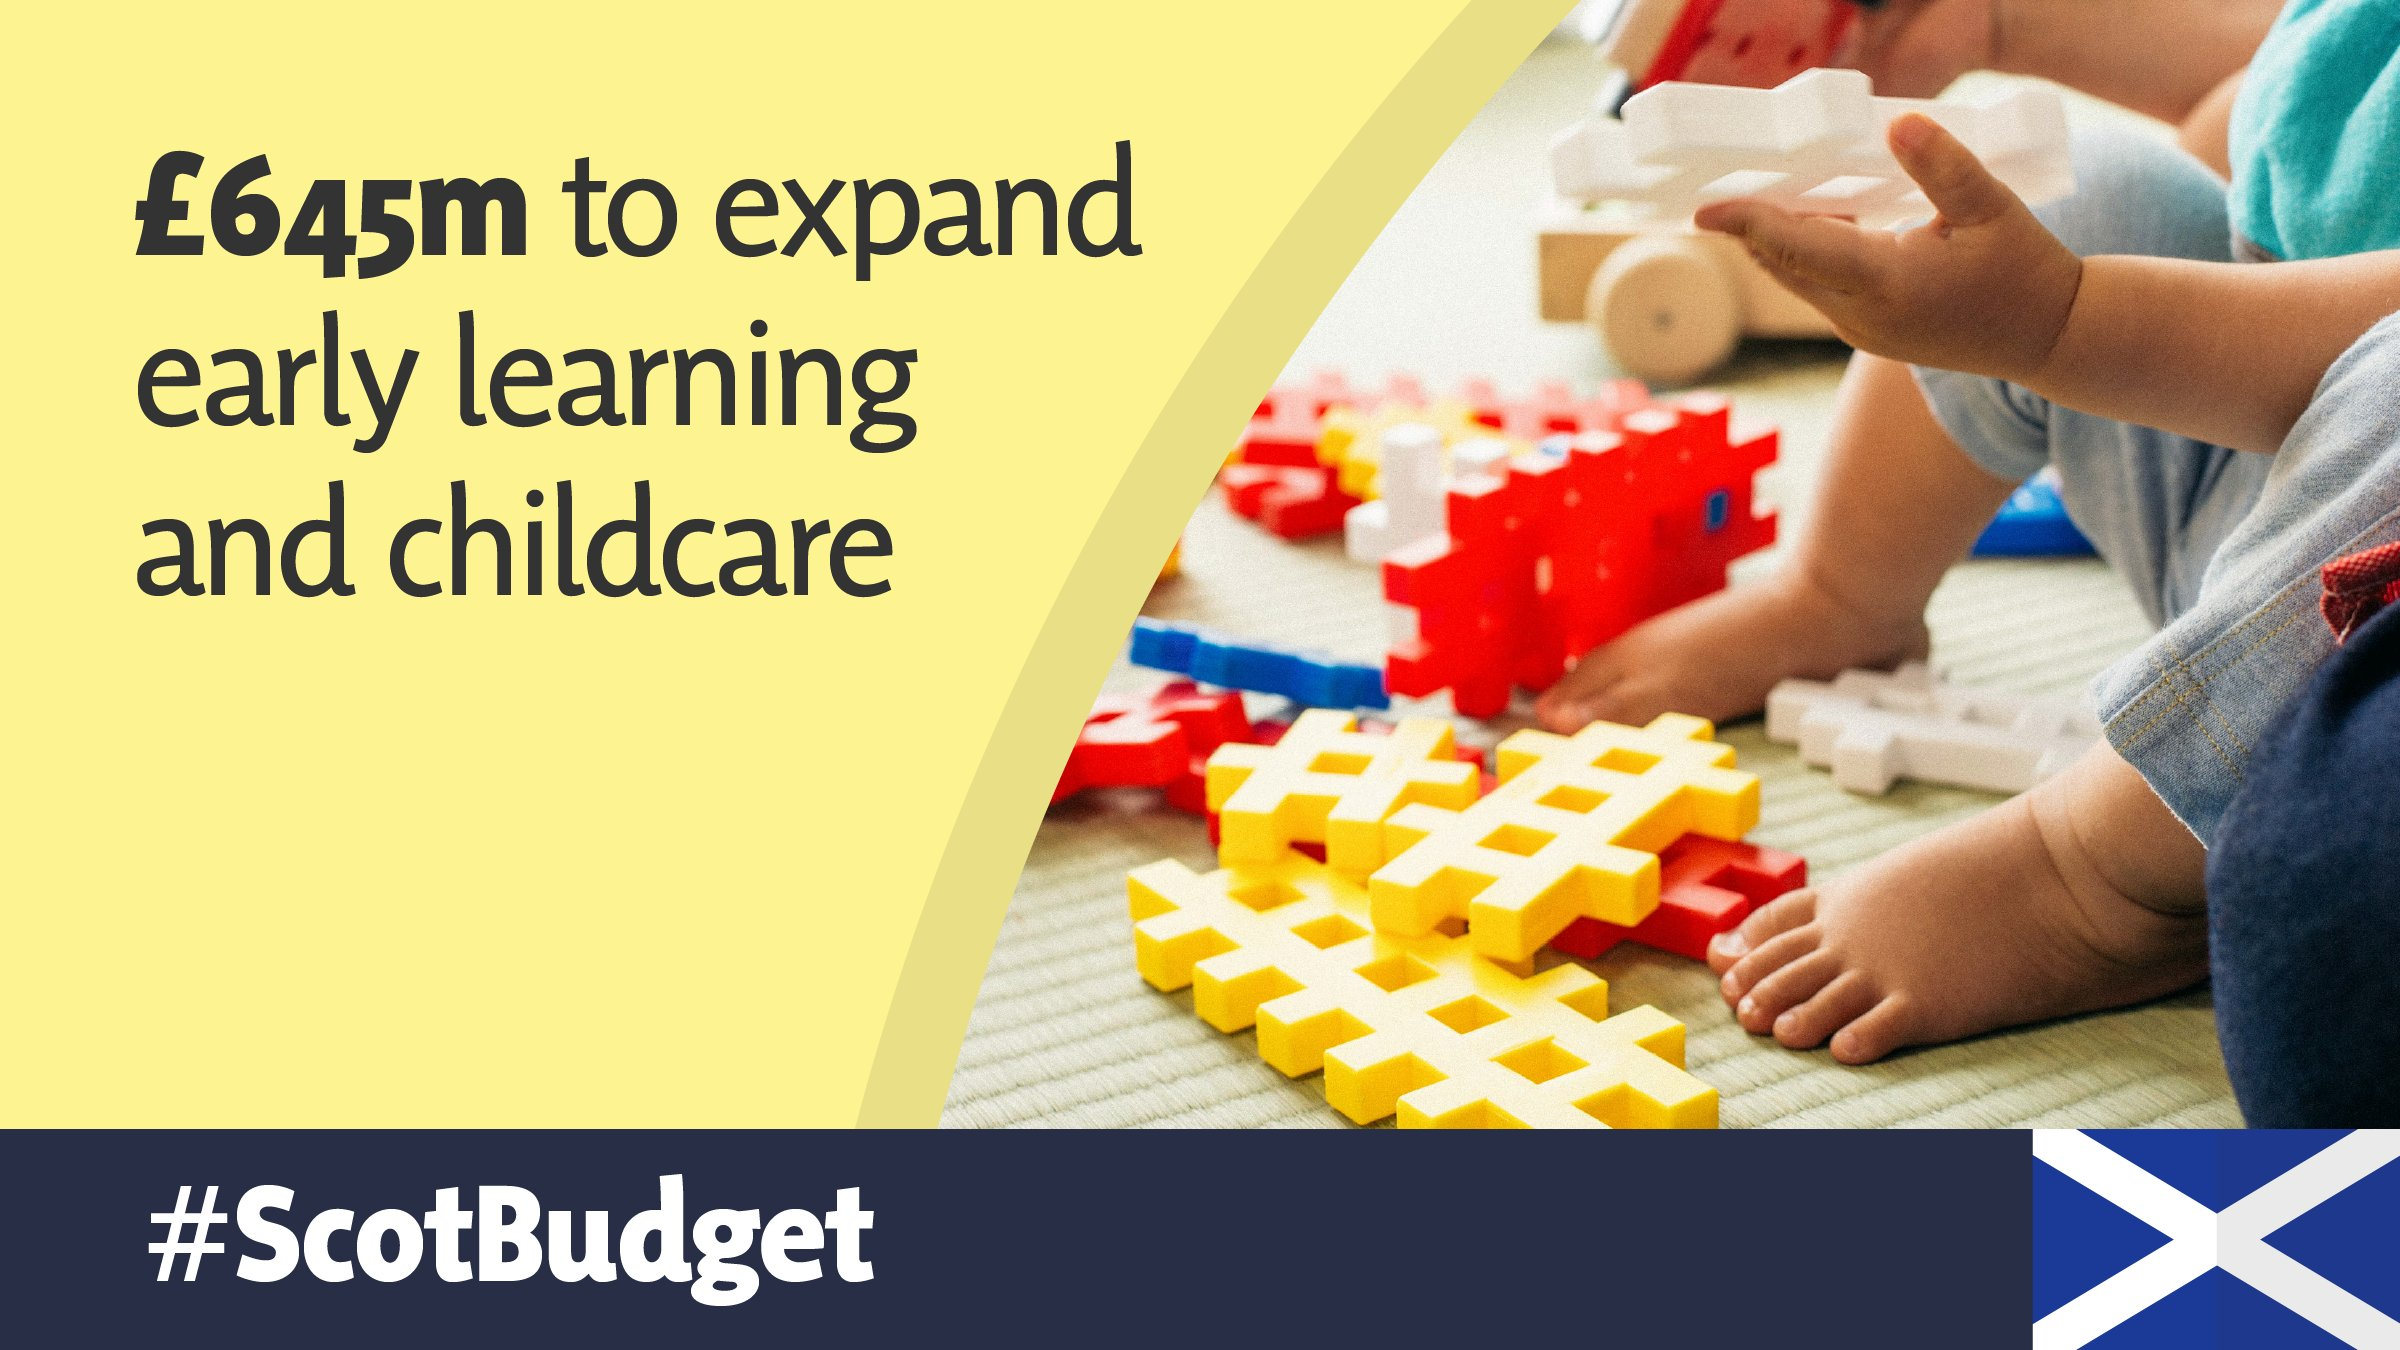 Budget Graphics - Childcare